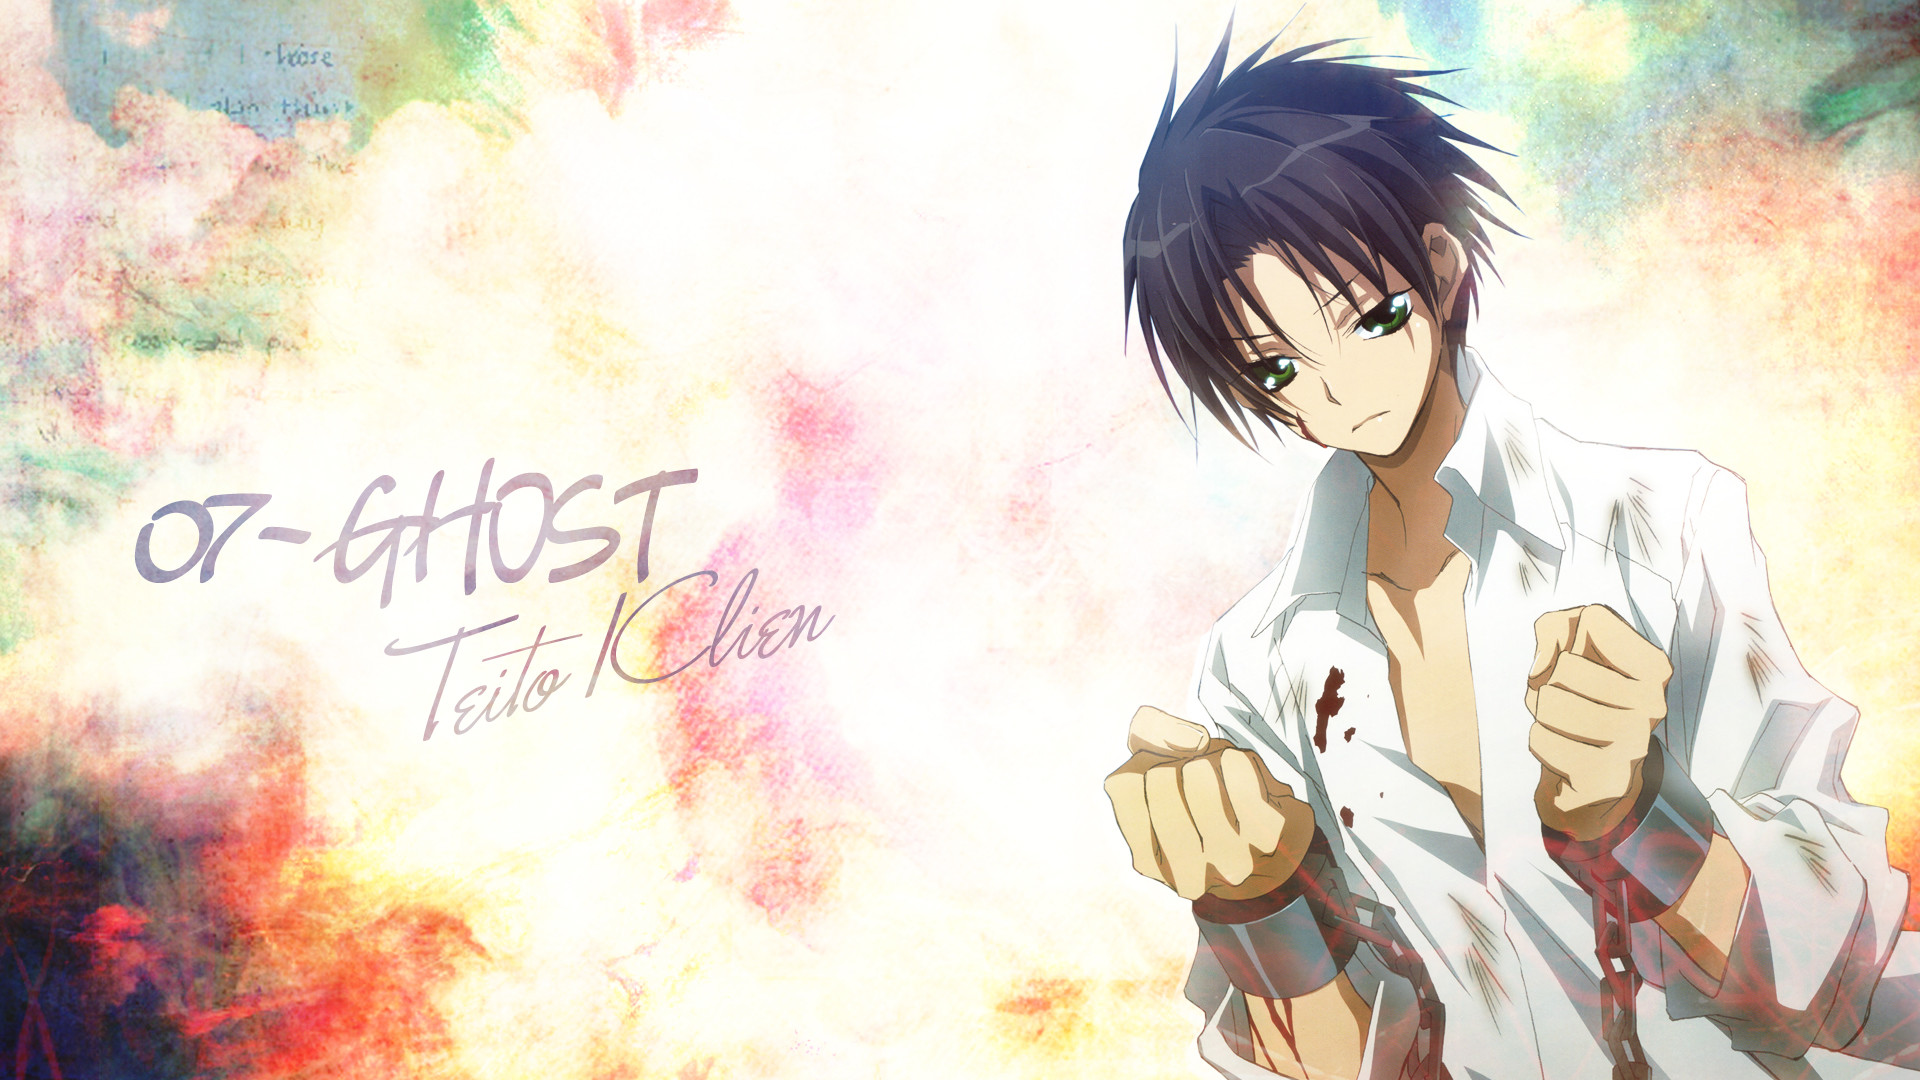 Res: 1920x1080, 07-ghost anime images 07-ghost HD wallpaper and background photos